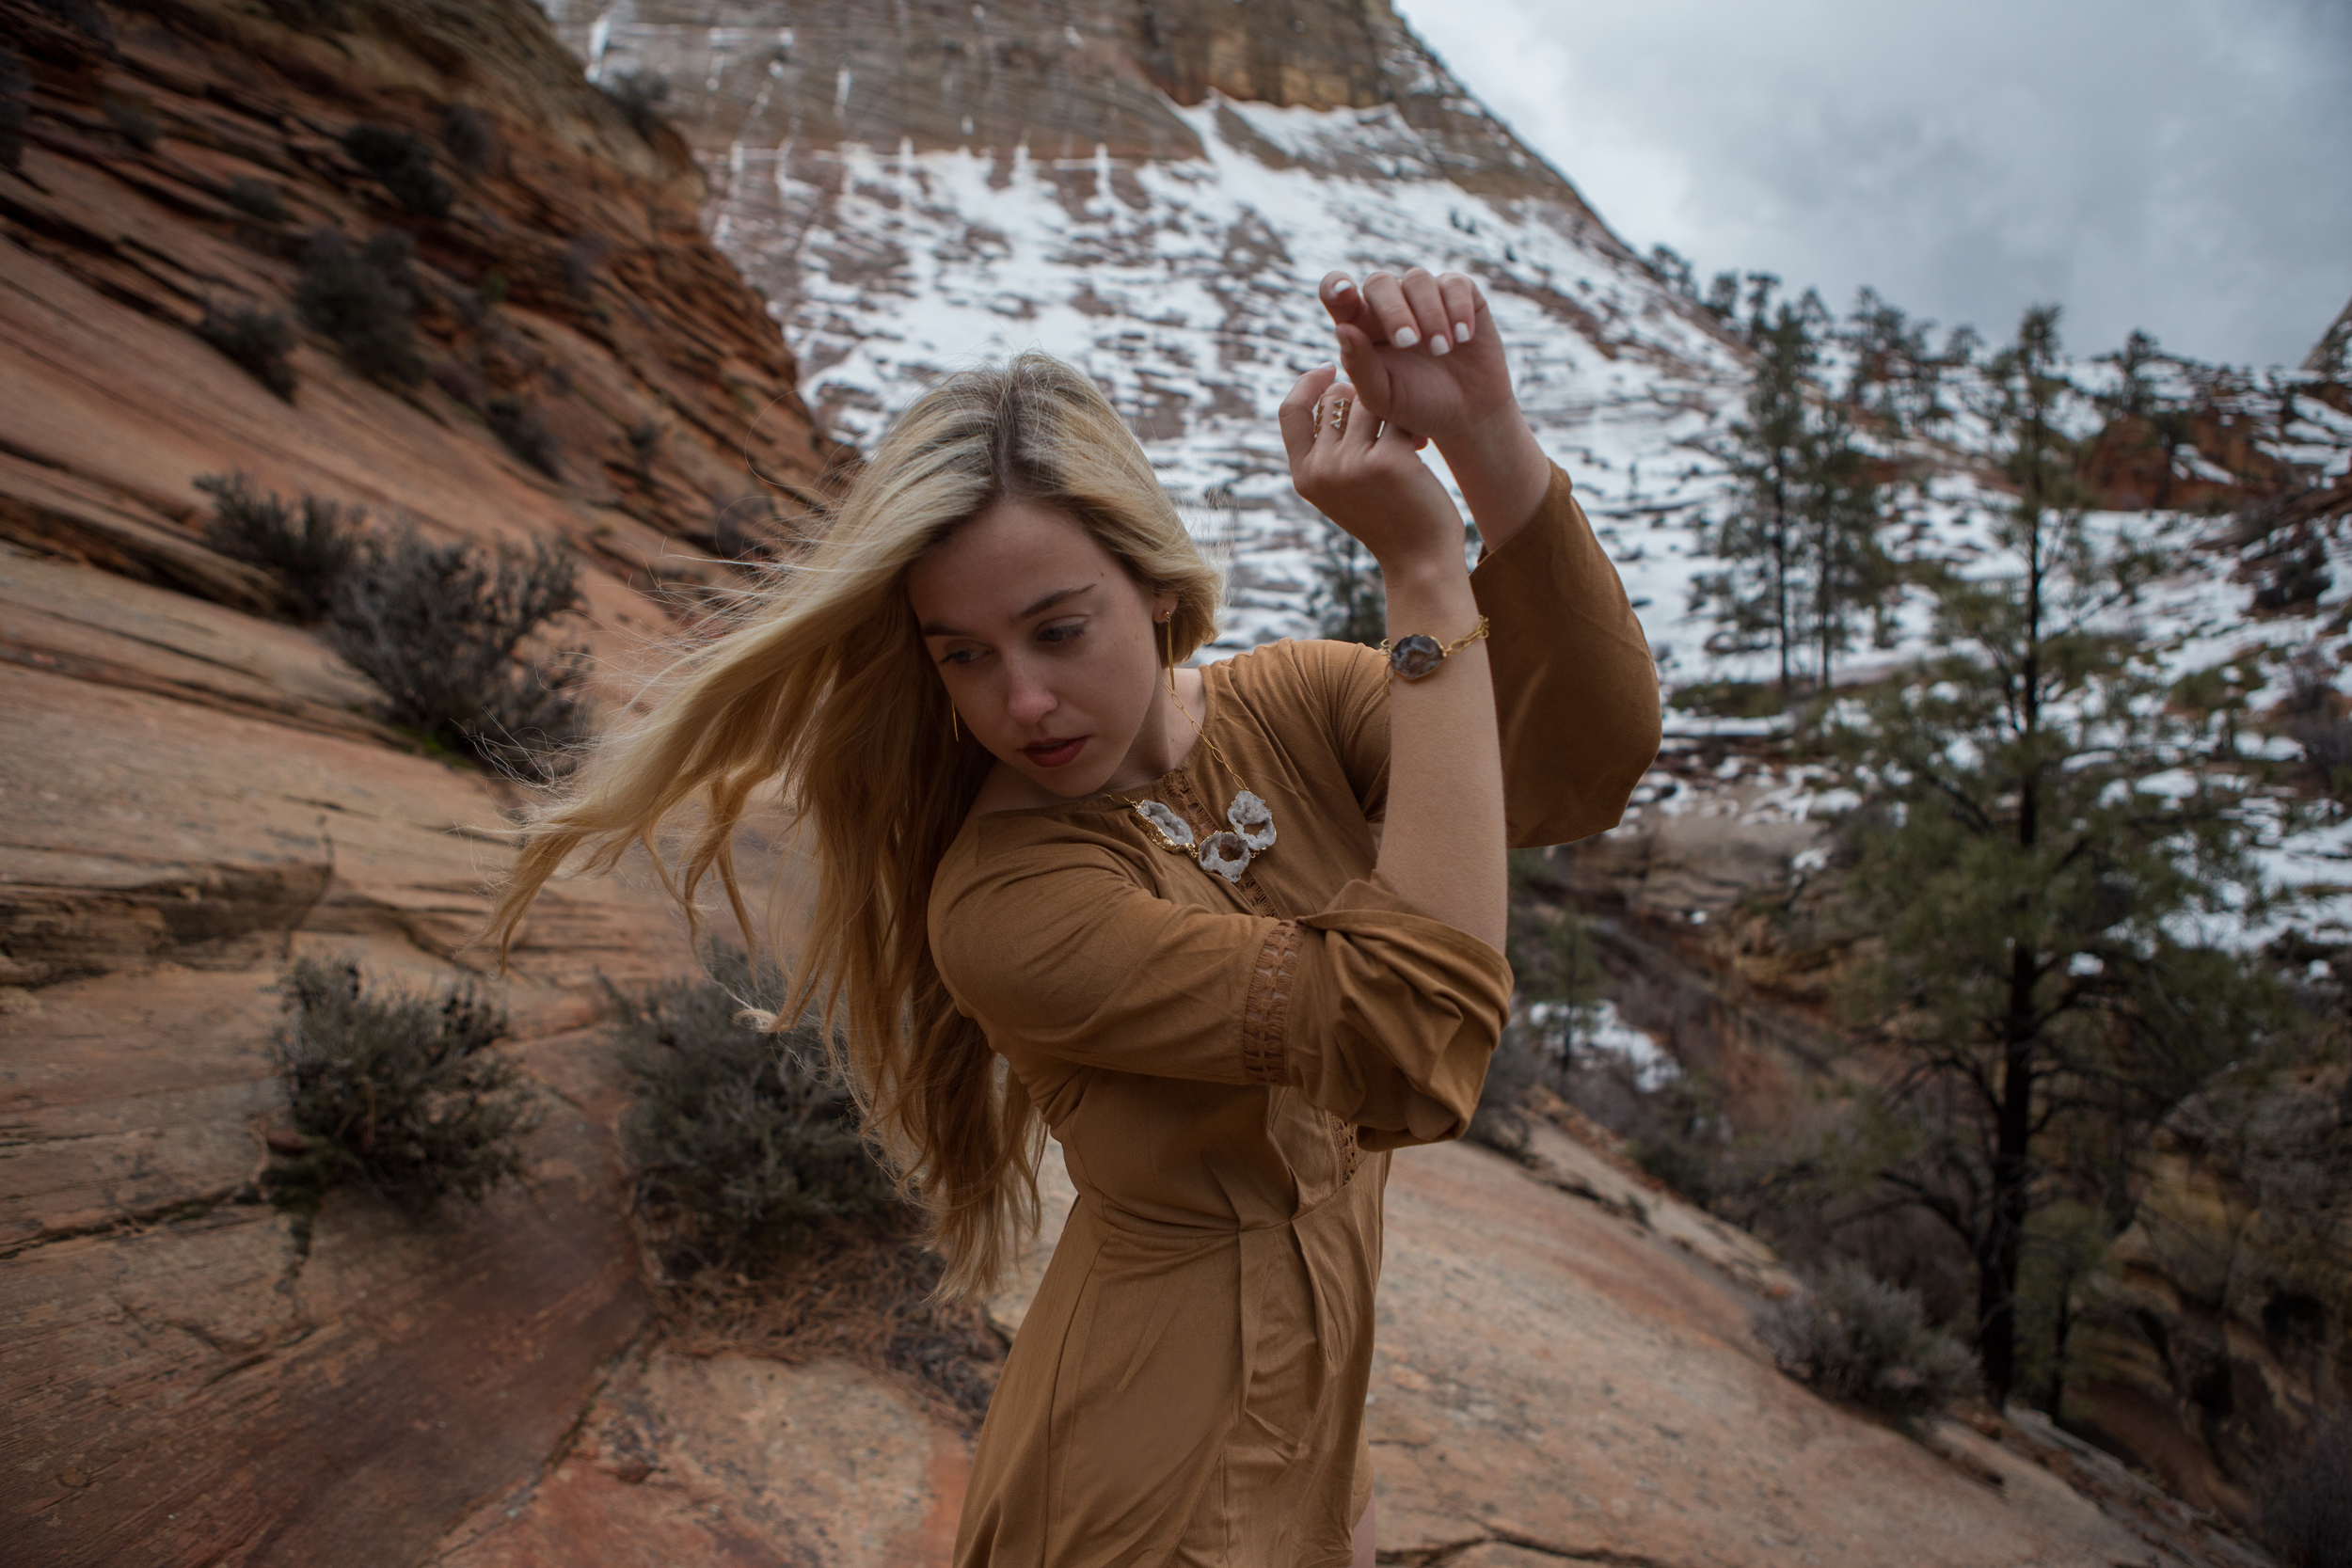 AstroBandit_JordanRose_Zion_WinterInZion_Snow_Fashion_NationalPark_1.jpg